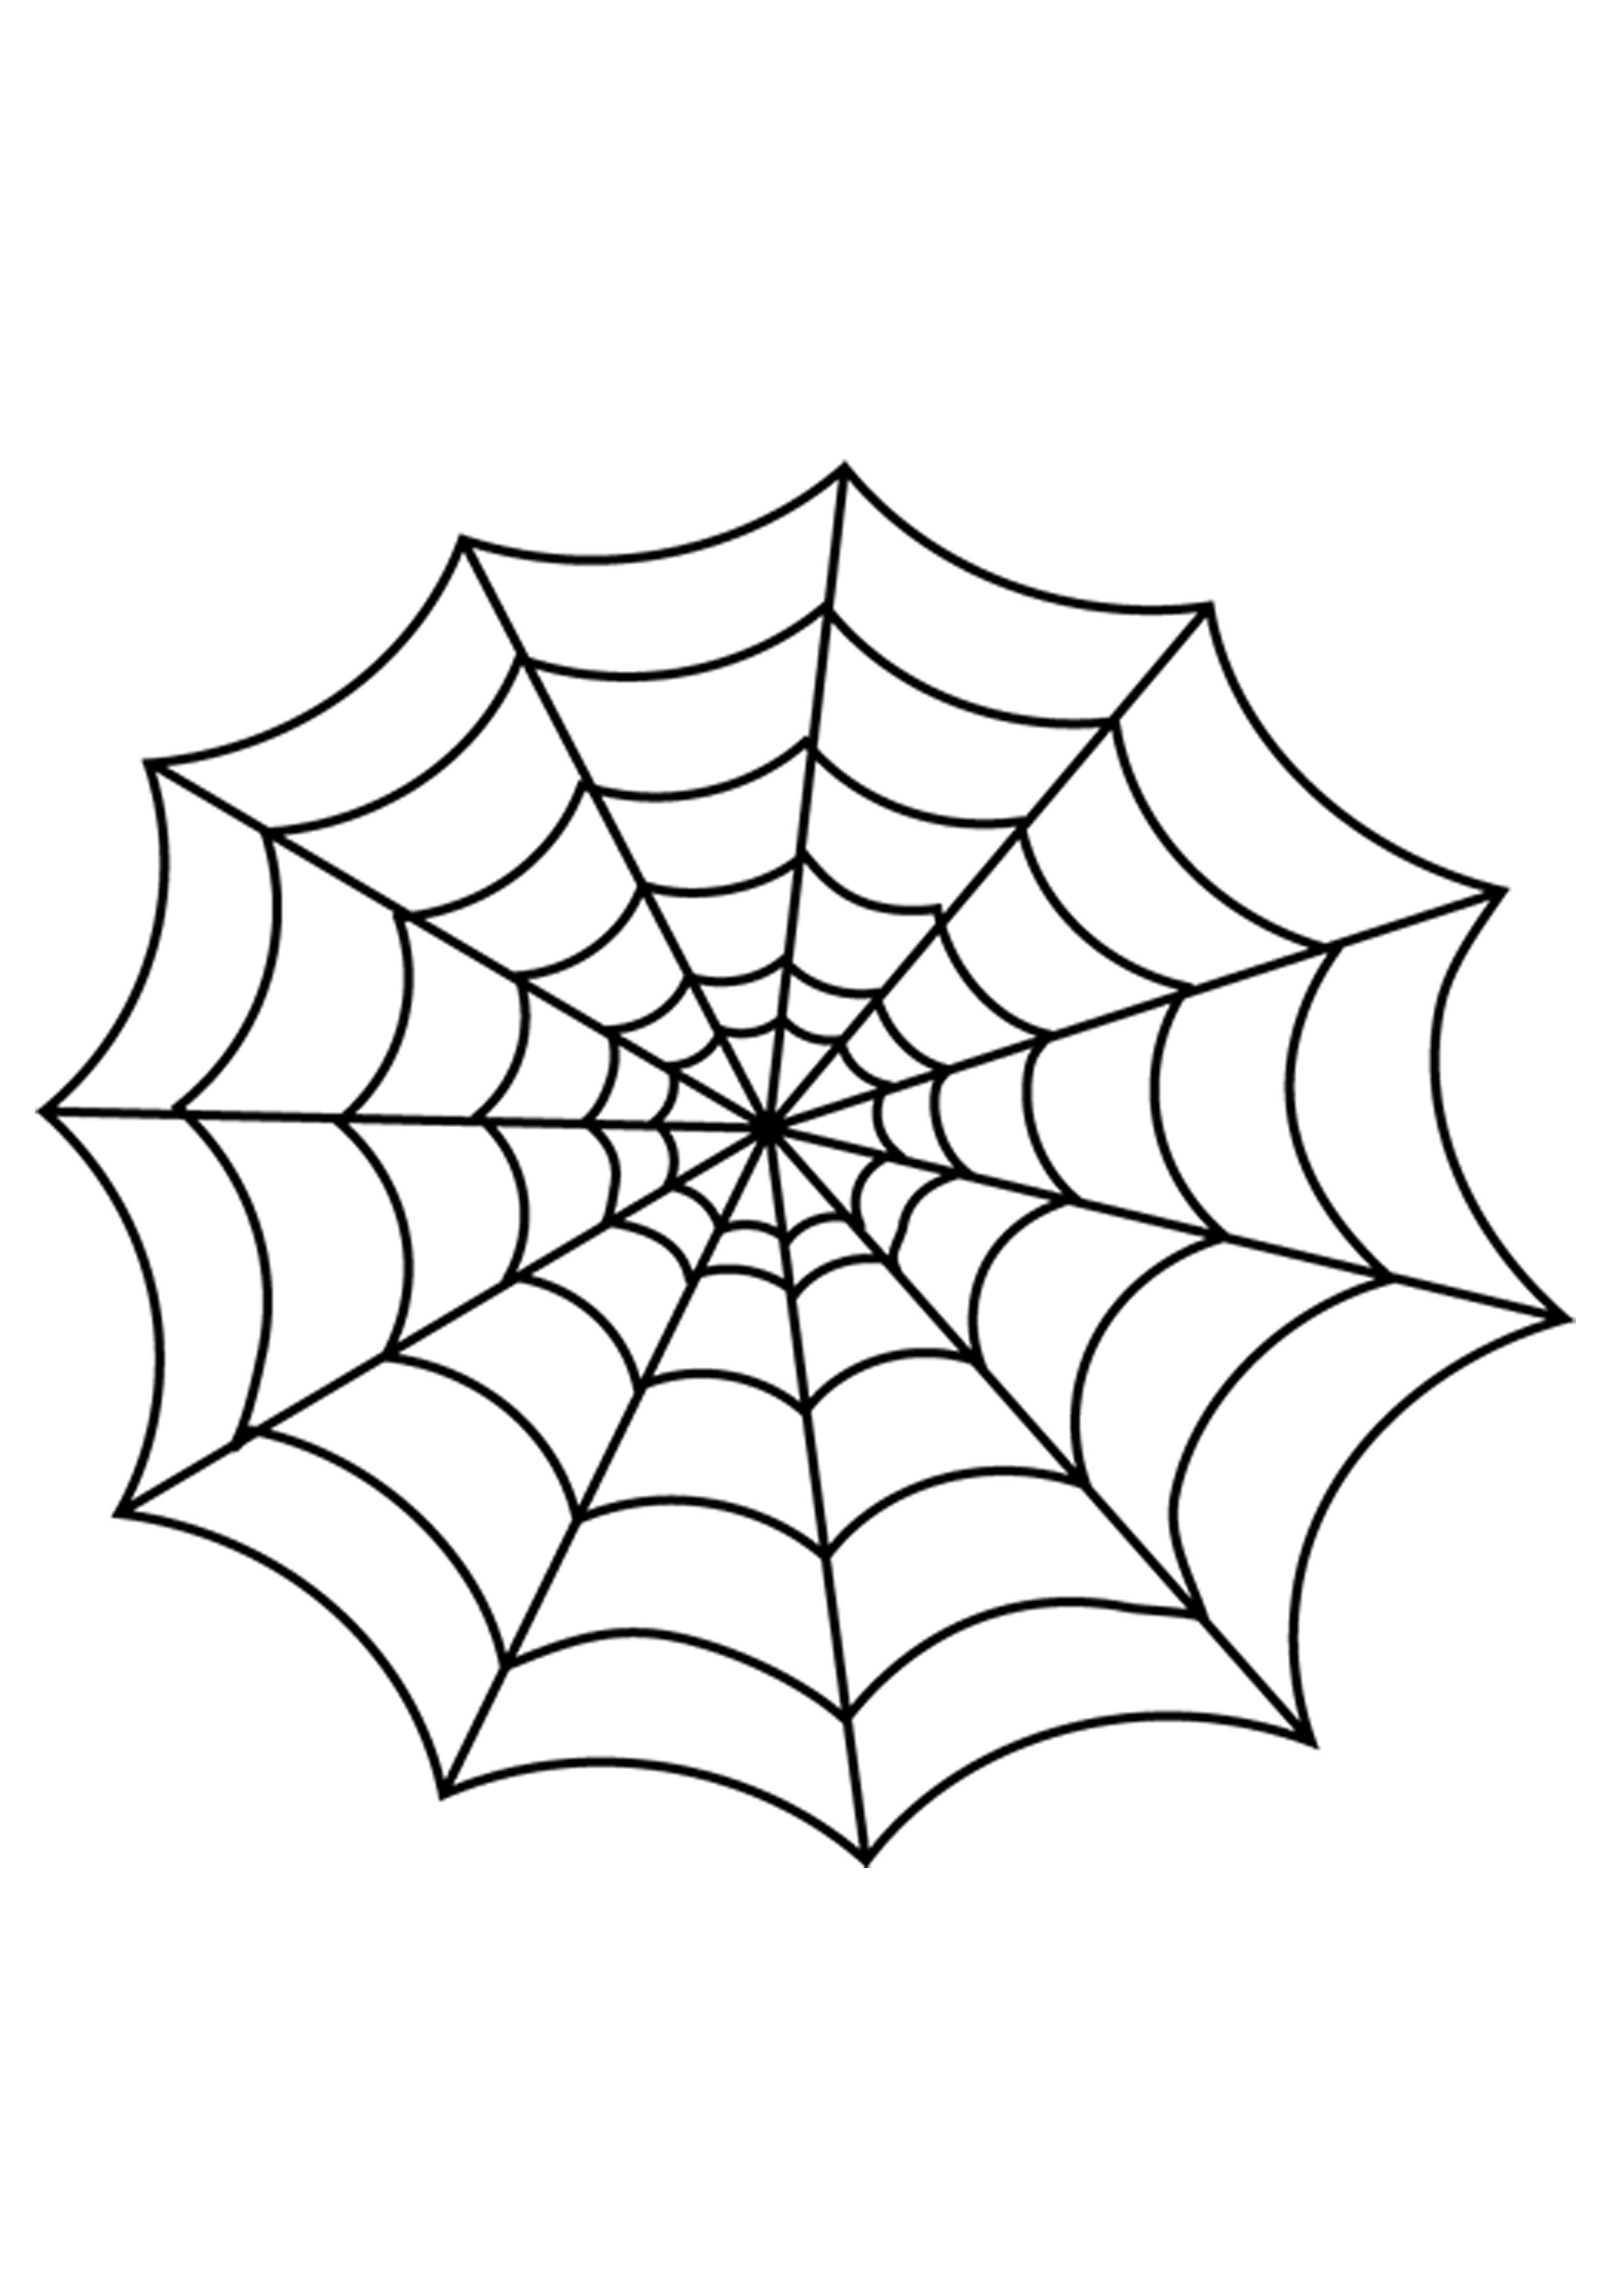 spider web coloring page # 4